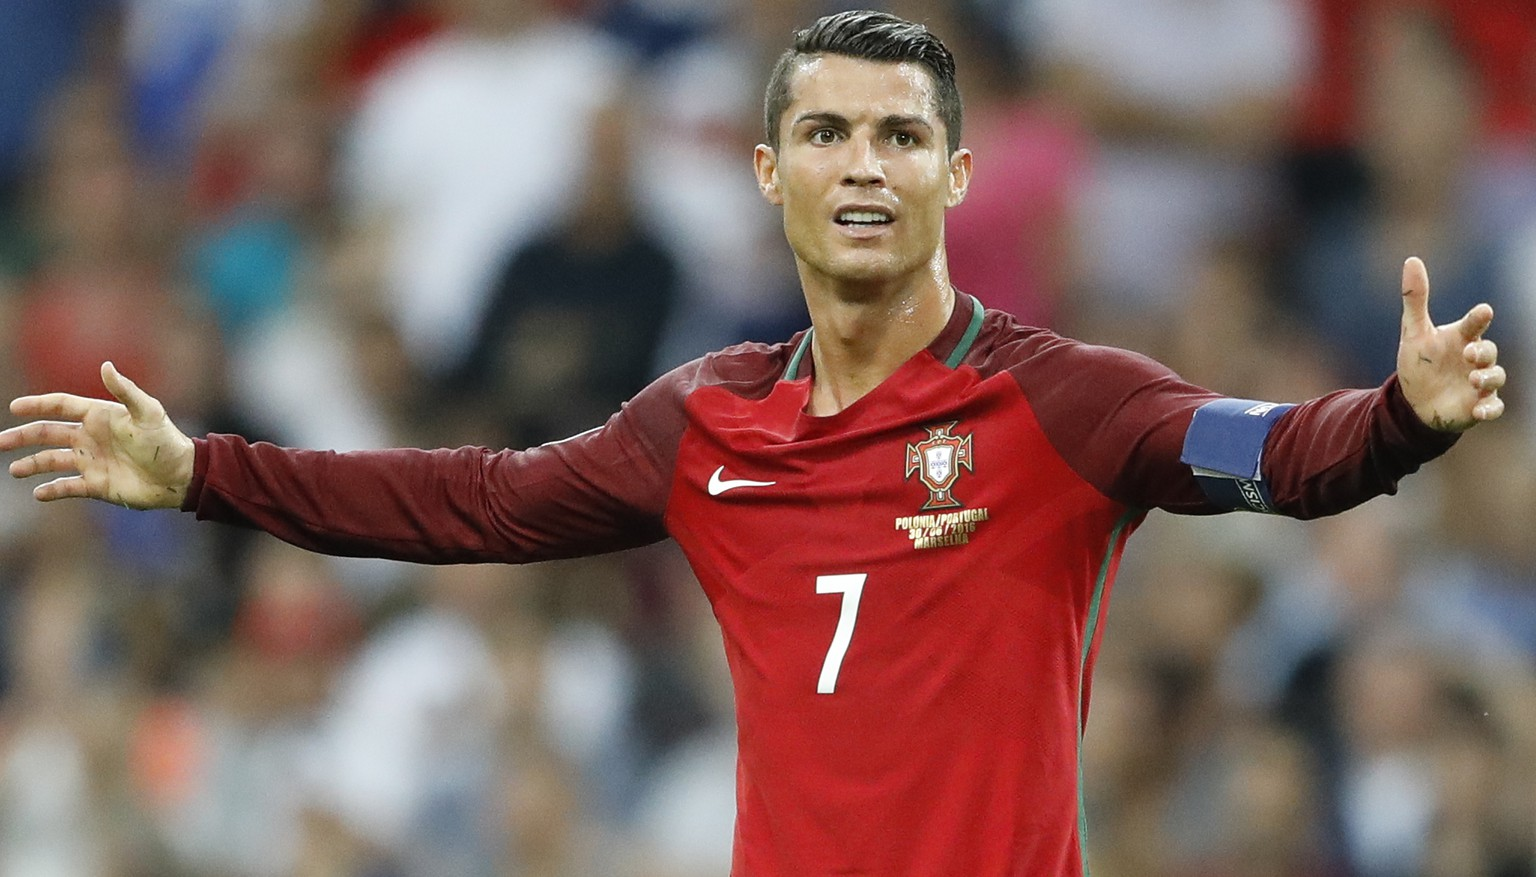 Portugal's Cristiano Ronaldo opens his arms as he calls for referee's attention during the Euro 2016 quarterfinal soccer match between Poland and Portugal, at the Velodrome stadium in Marseille, France, Thursday, June 30, 2016. (AP Photo/Frank Augstein)